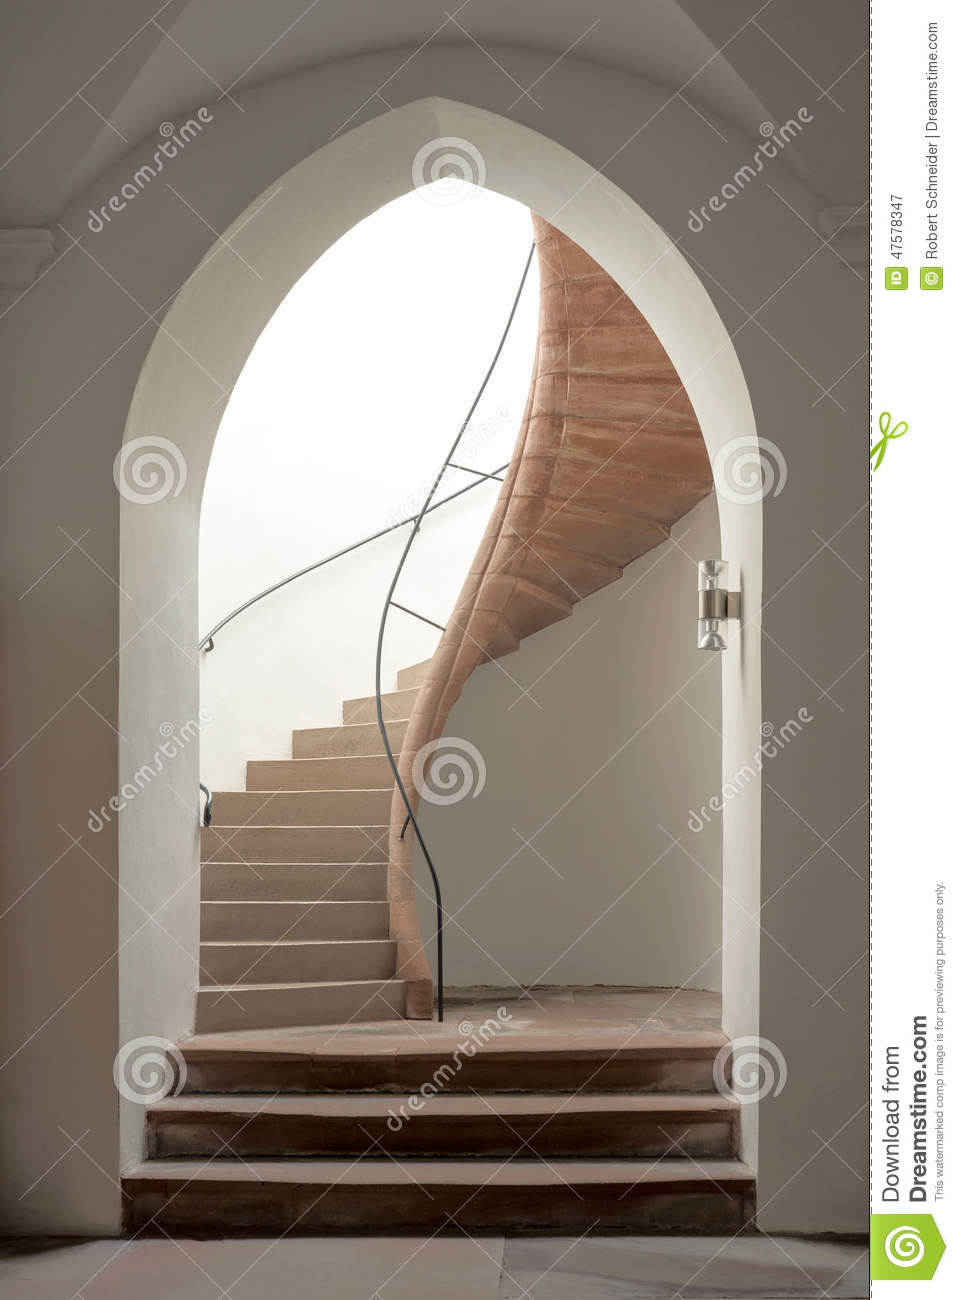 Pointed Arch With Staircase Stock Photo.